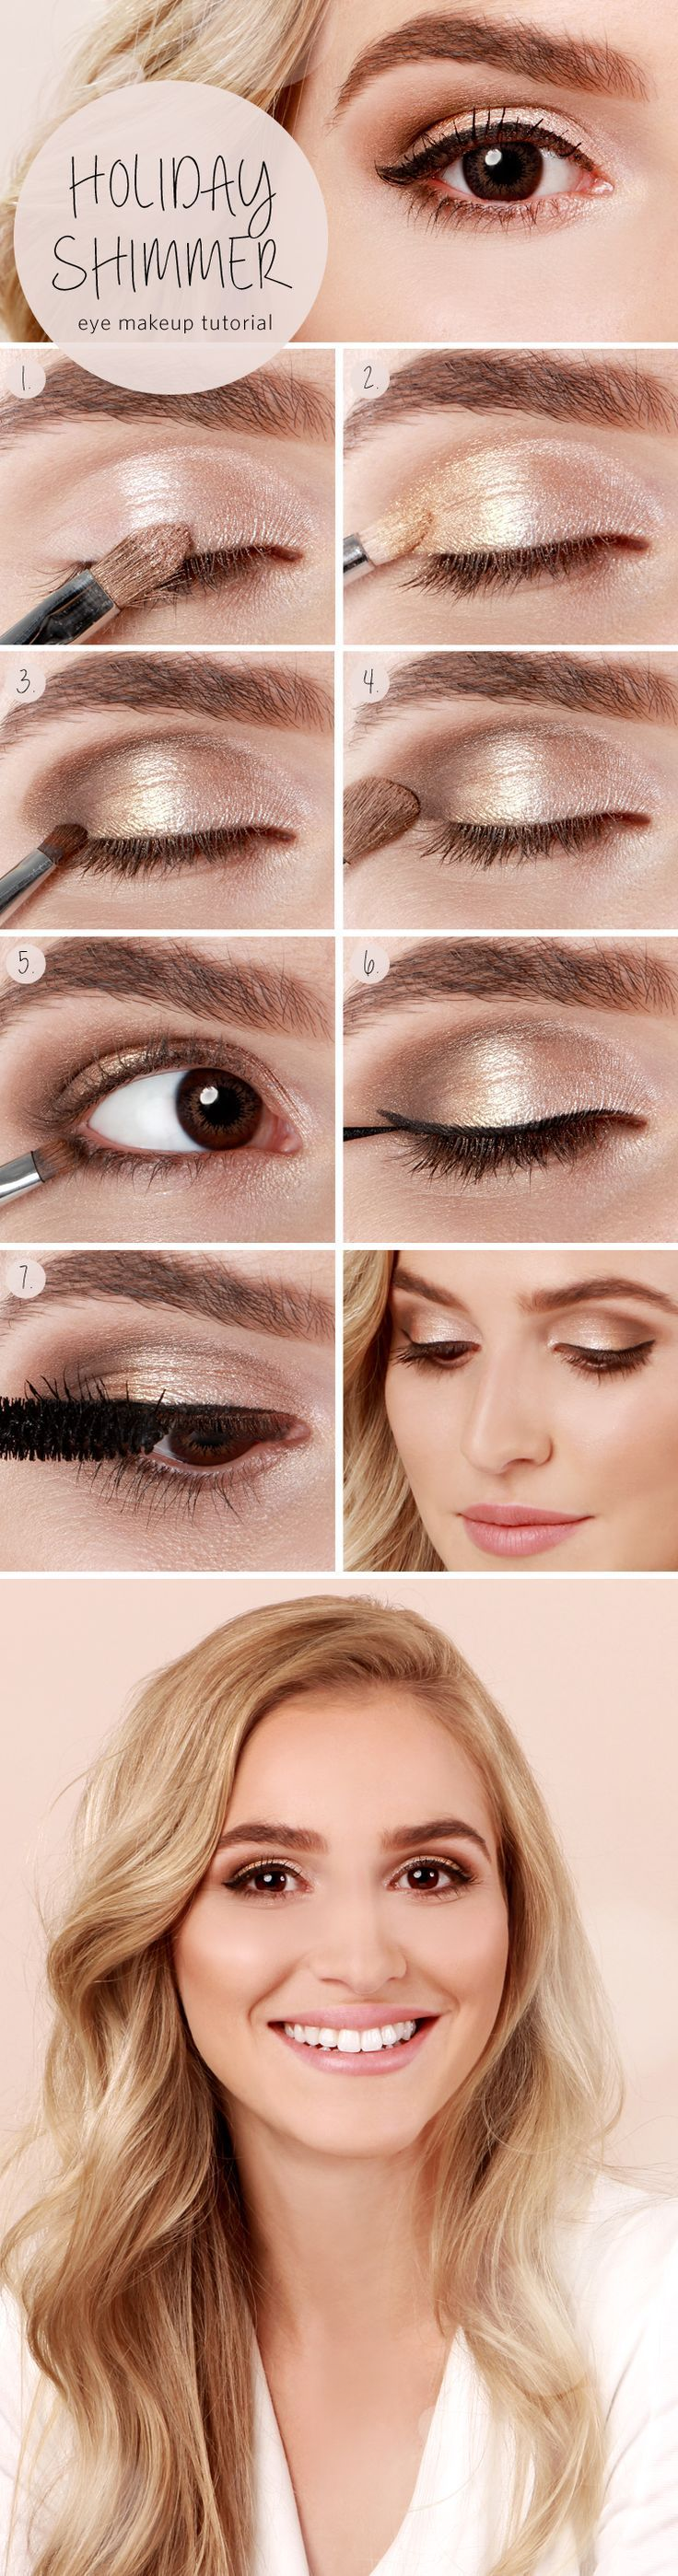 10 Party Eye Make up Tutorials for You to Rock - Pretty Designs